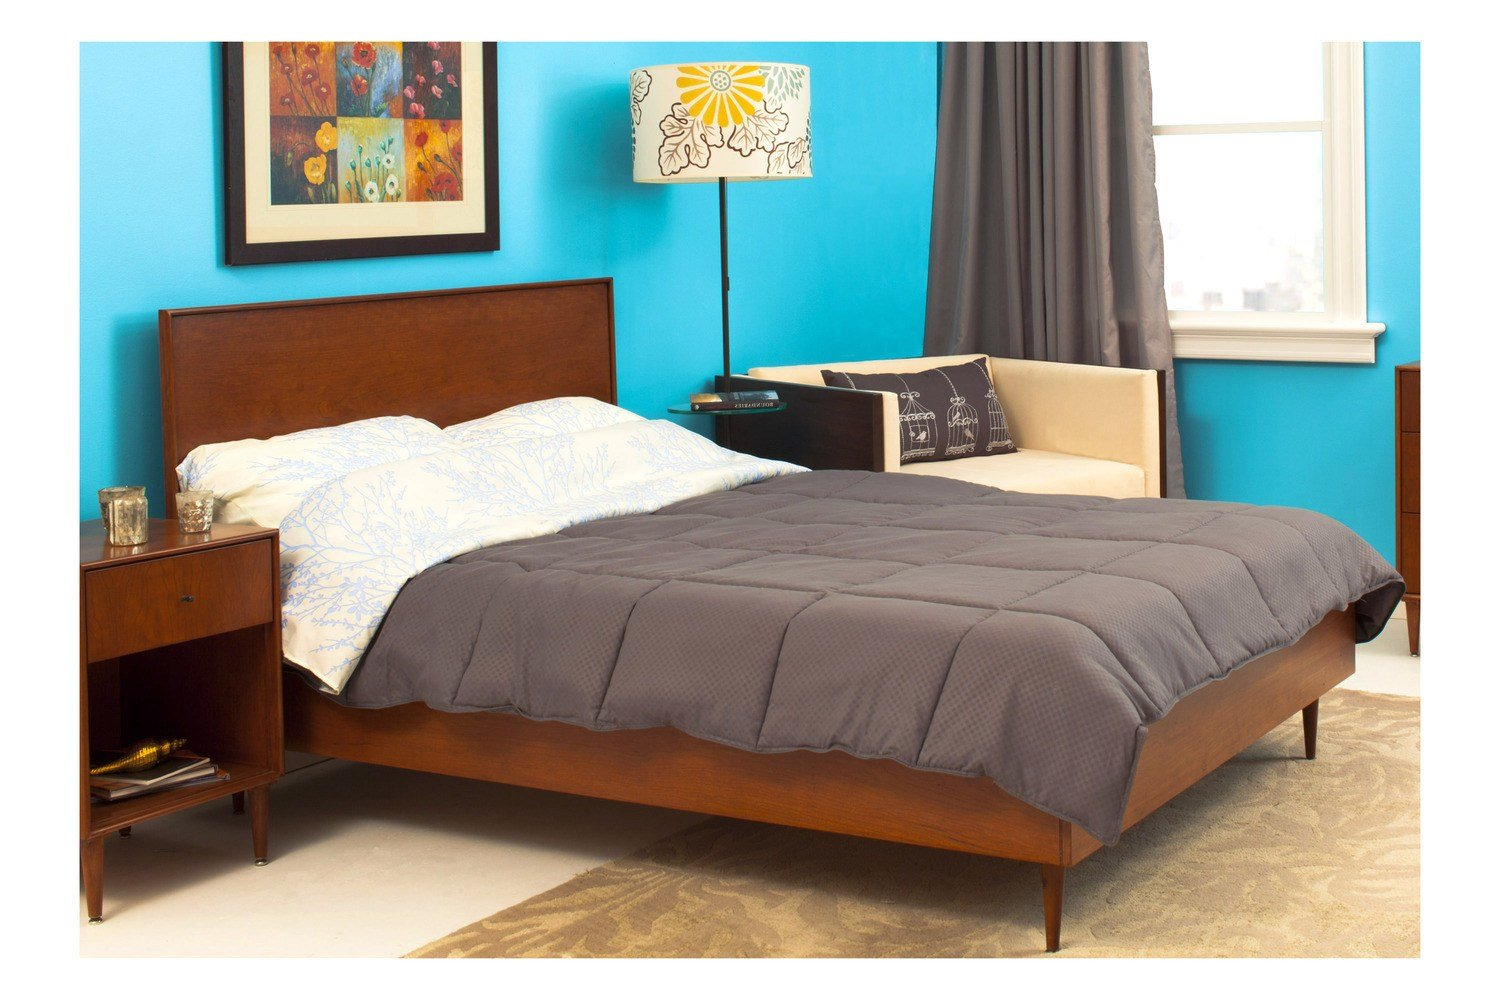 Best Midcentury Modern Queen Bed Beds Bedroom By Urbangreen With Pictures